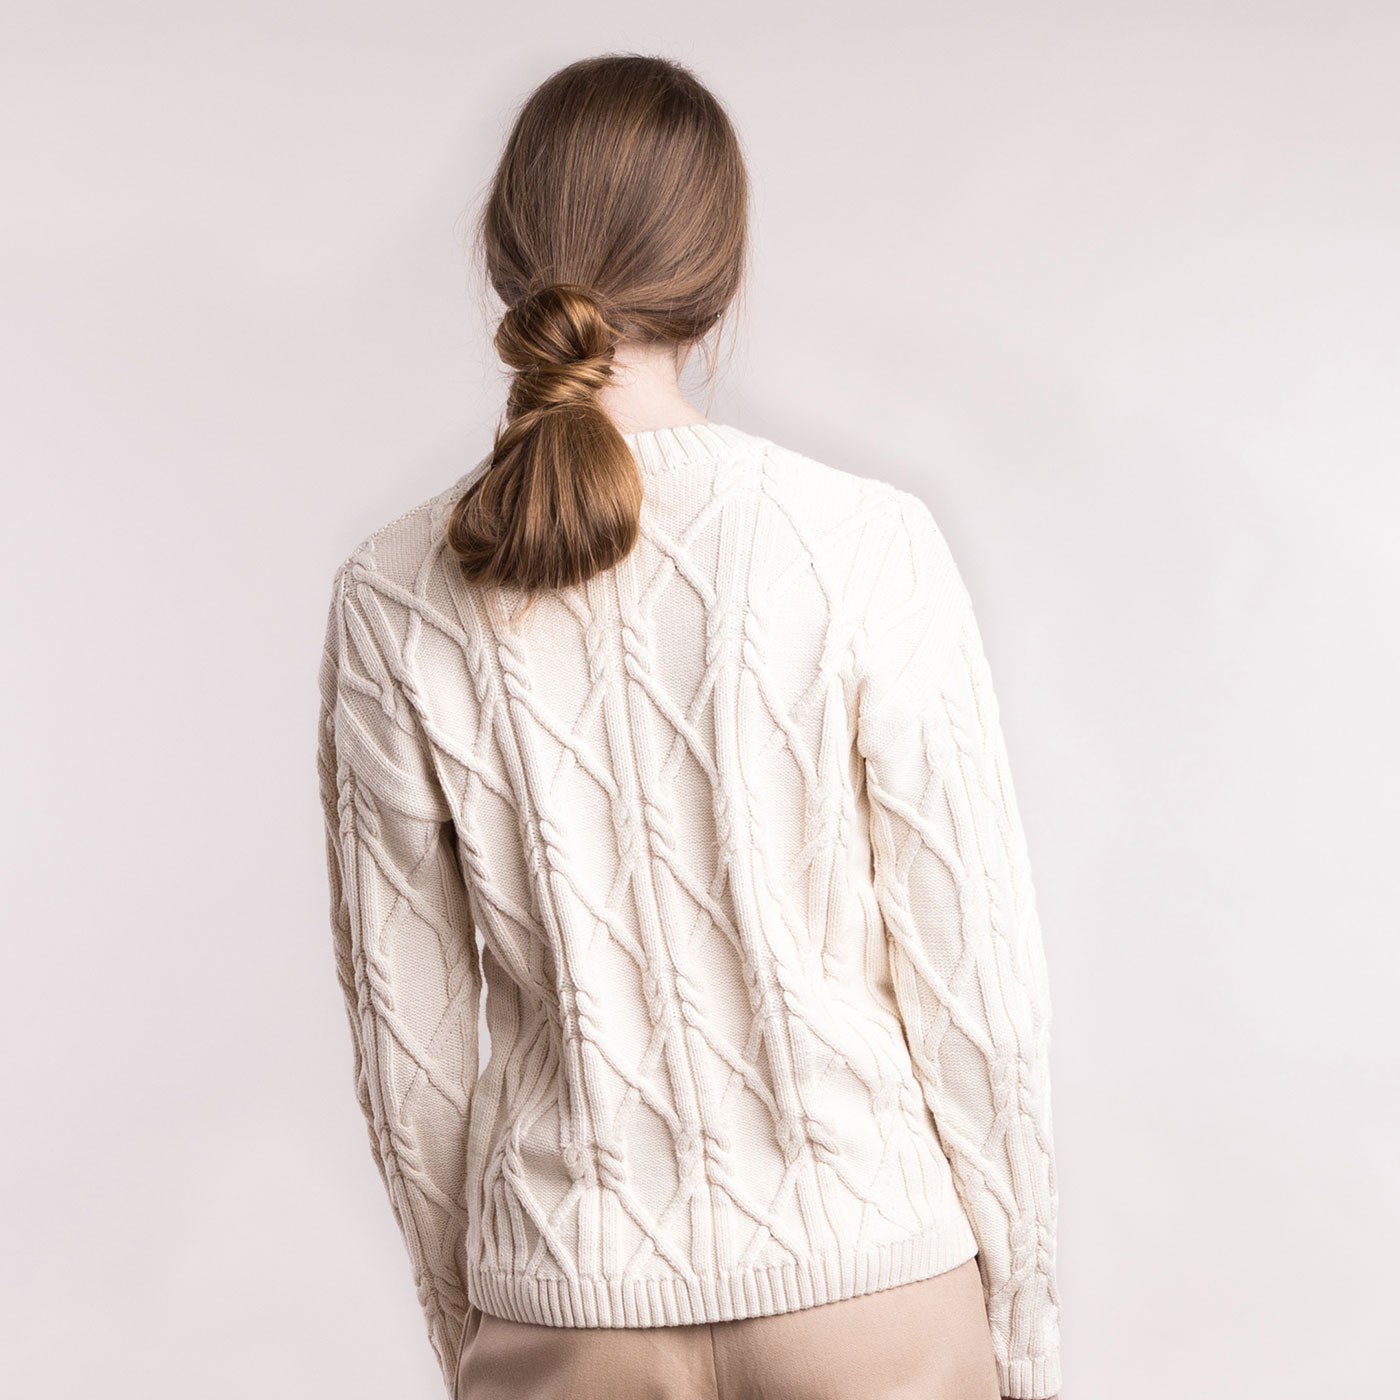 The model wears a cream sustainable organic cotton knitted aran pullover, back view.